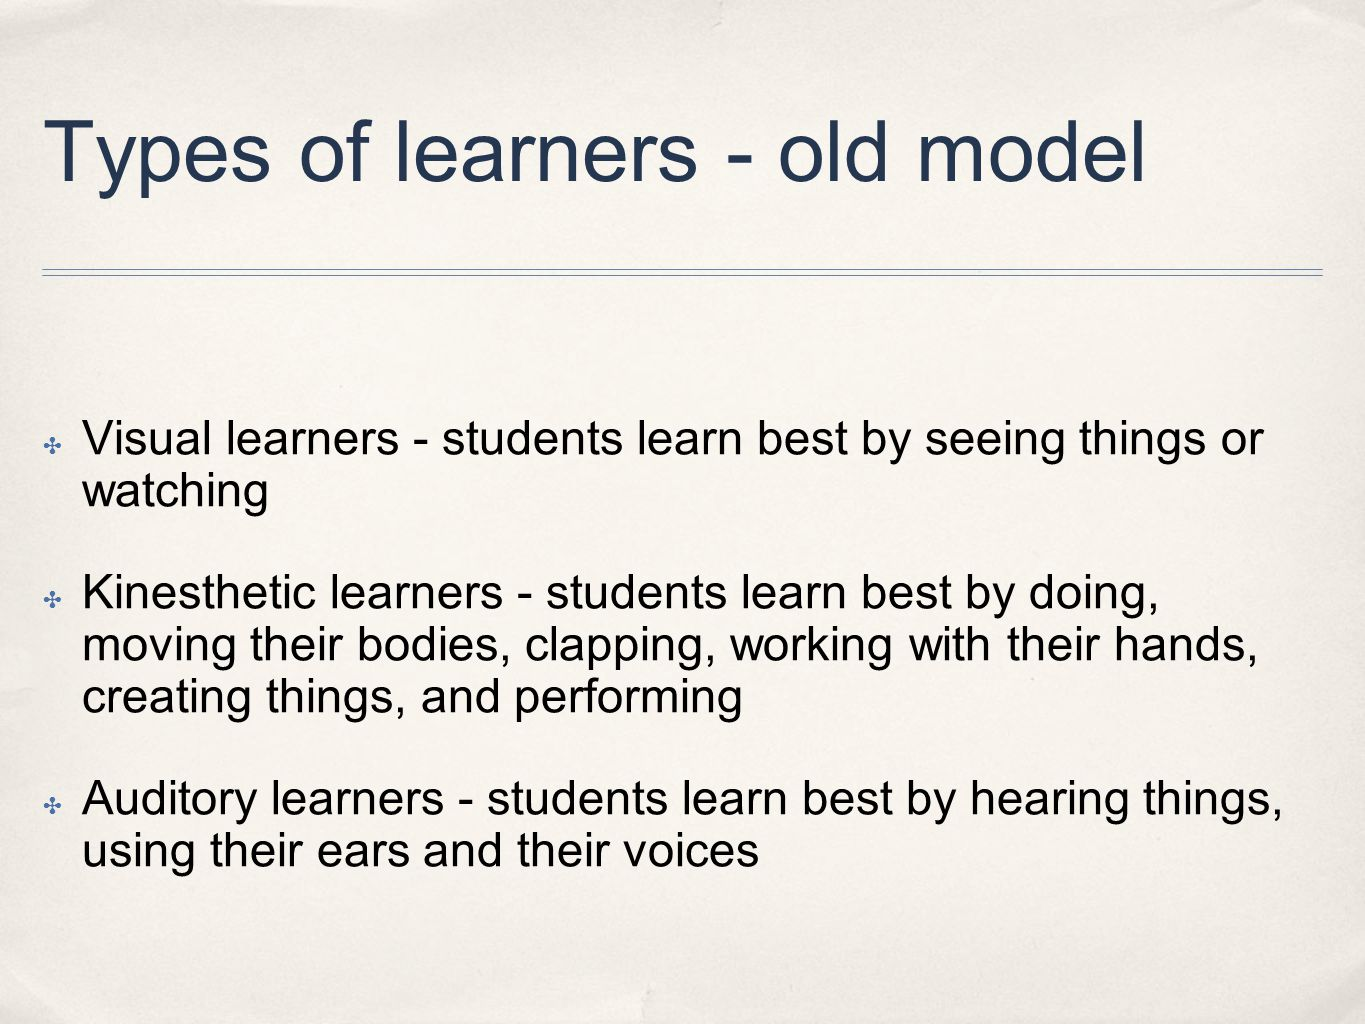 Types of learners - old model ✤ Visual learners - students learn best by seeing things or watching ✤ Kinesthetic learners - students learn best by doing, moving their bodies, clapping, working with their hands, creating things, and performing ✤ Auditory learners - students learn best by hearing things, using their ears and their voices